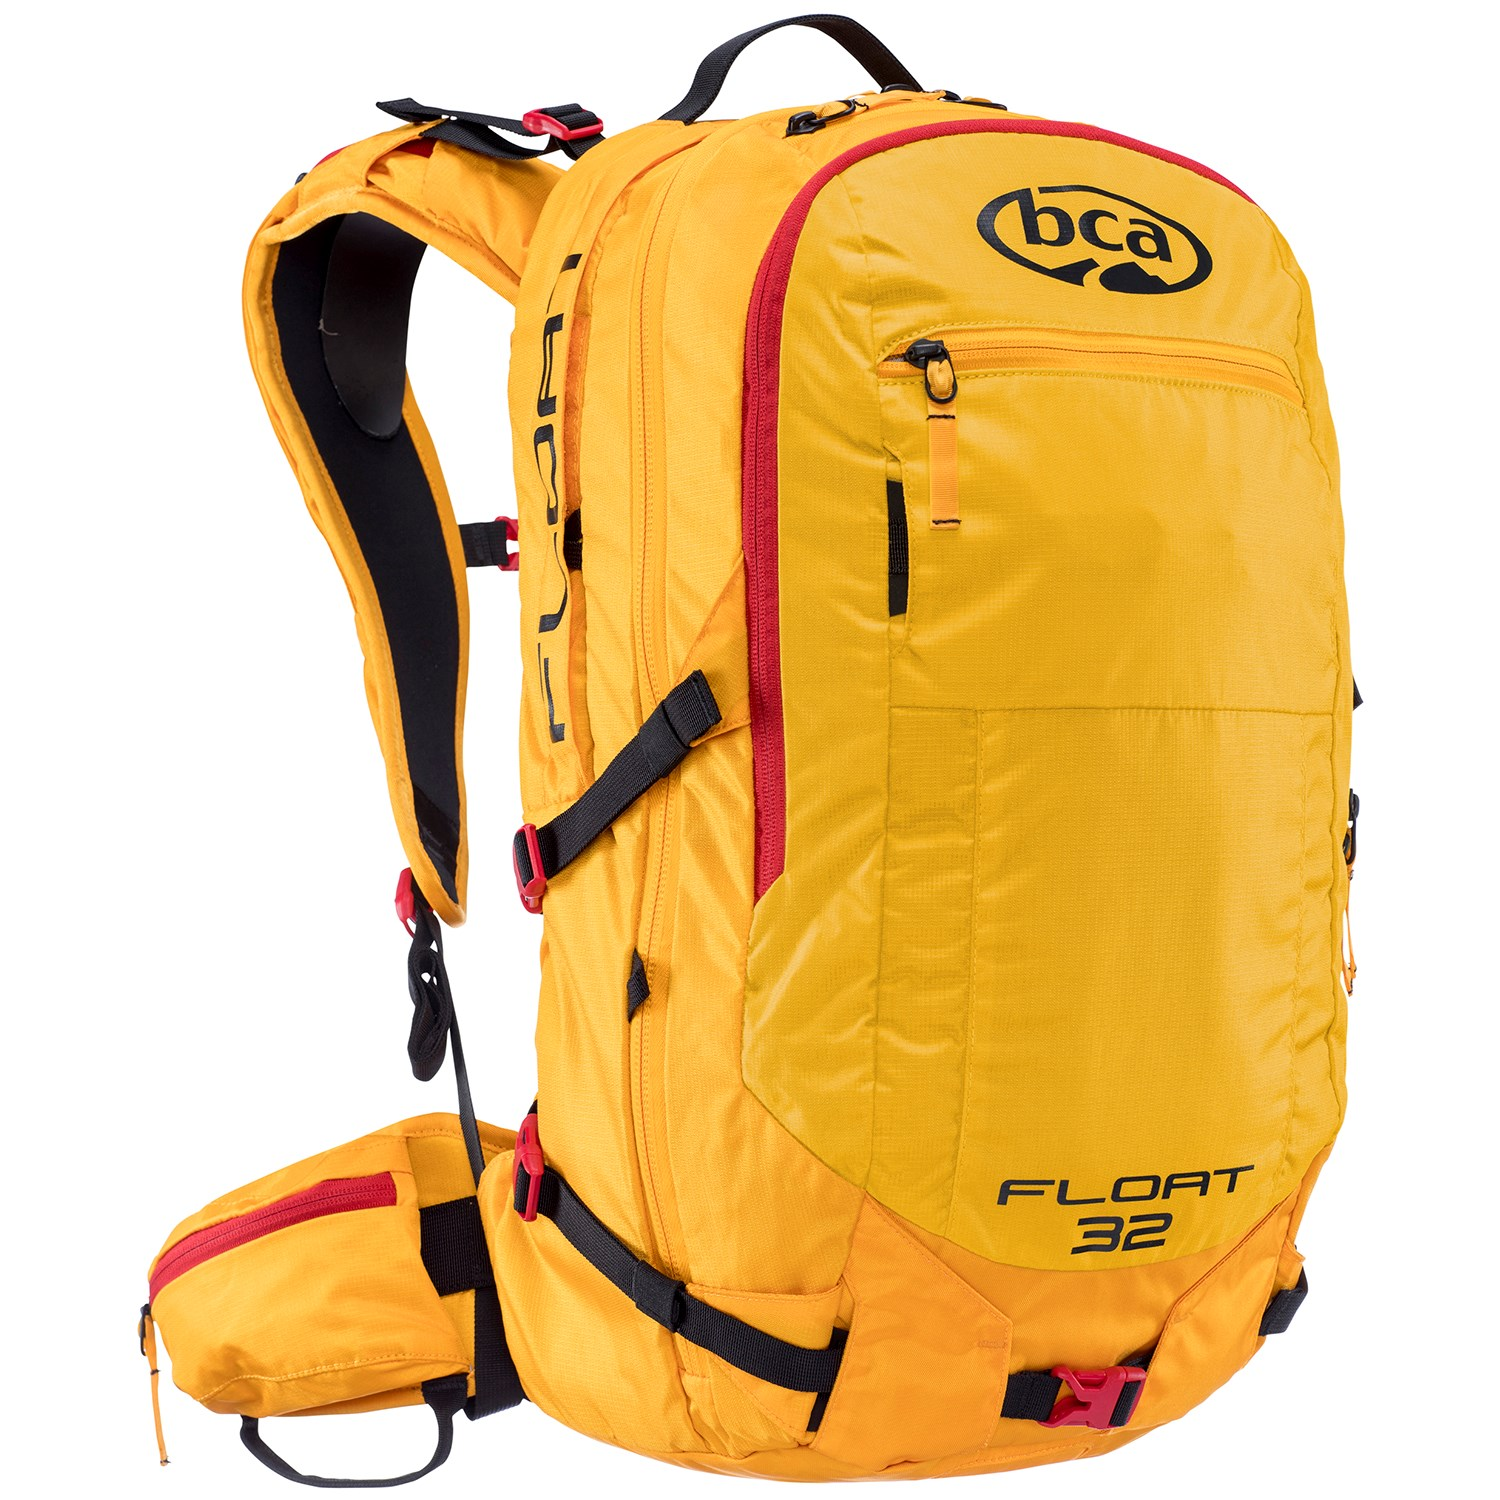 photo: Backcountry Access Float 32 2.0 avalanche airbag pack